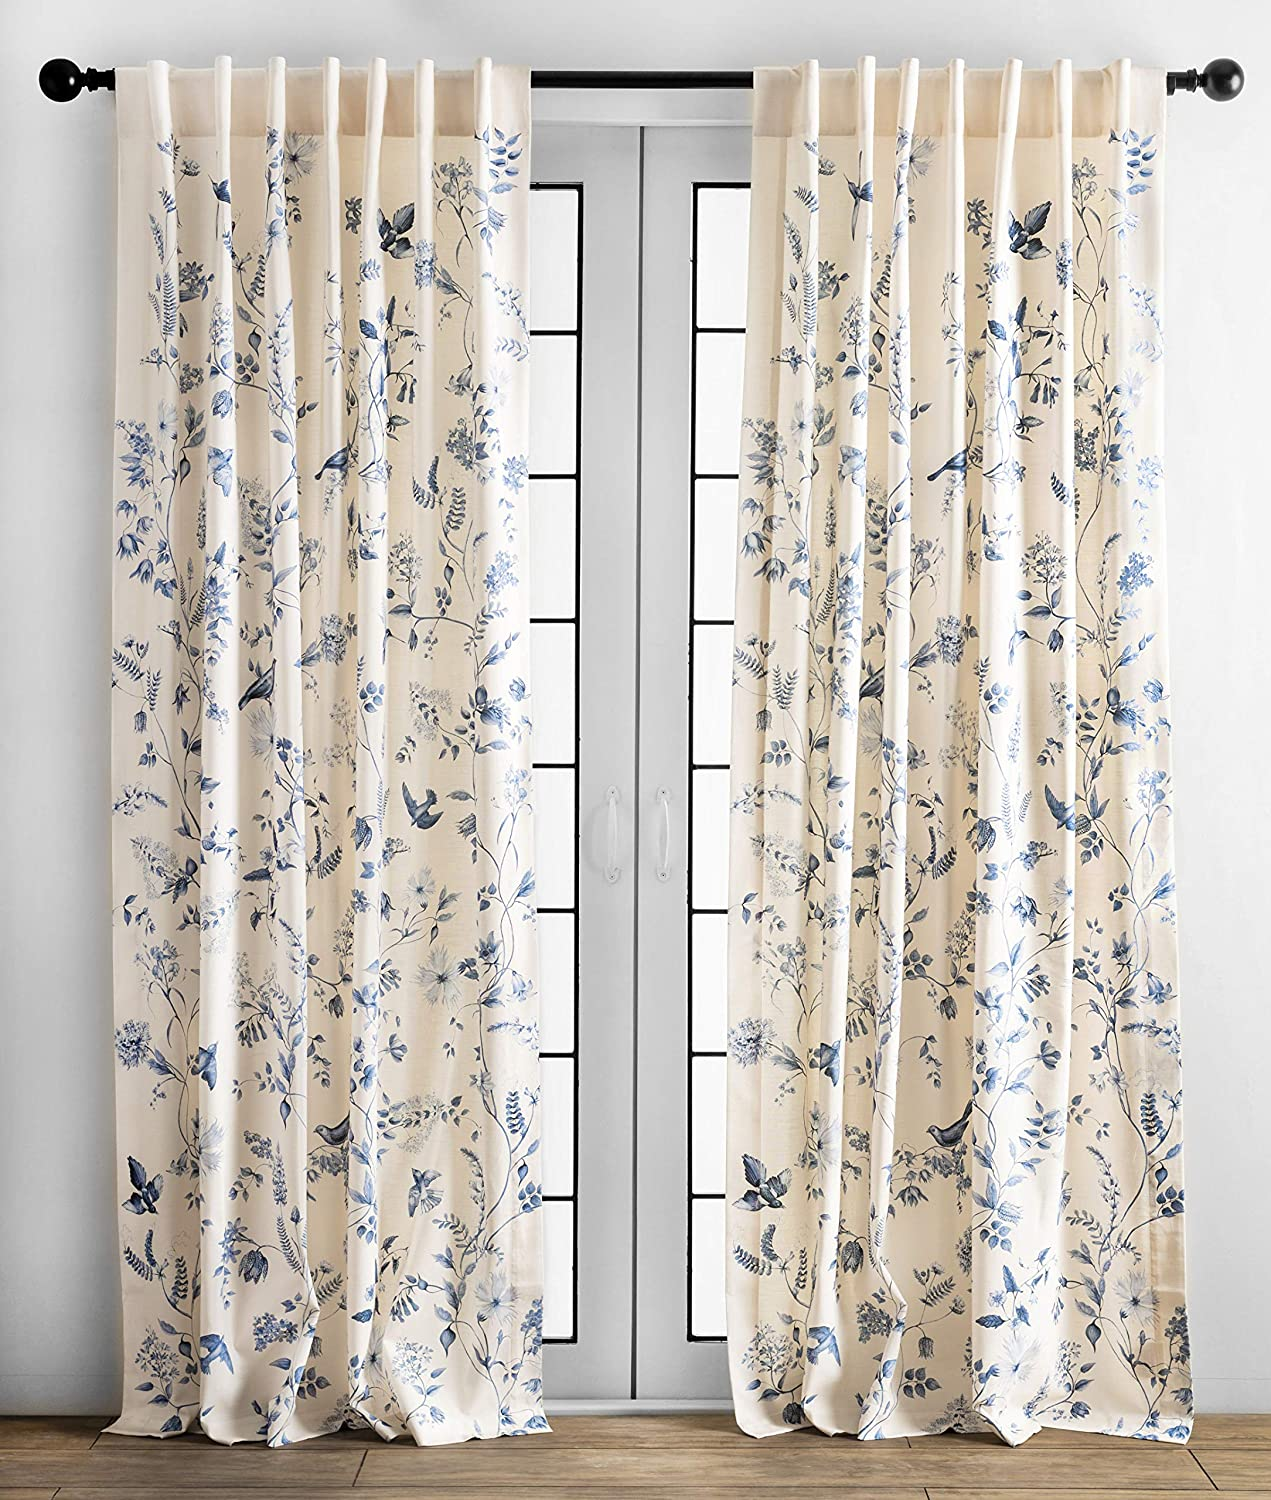 Maison d' Hermine Neo Ipomee 21 Cotton Curtain One Panel for Living Rooms  Bedrooms Offices Tailored with a Rod Pocket and Loop for Easy Hanging ...